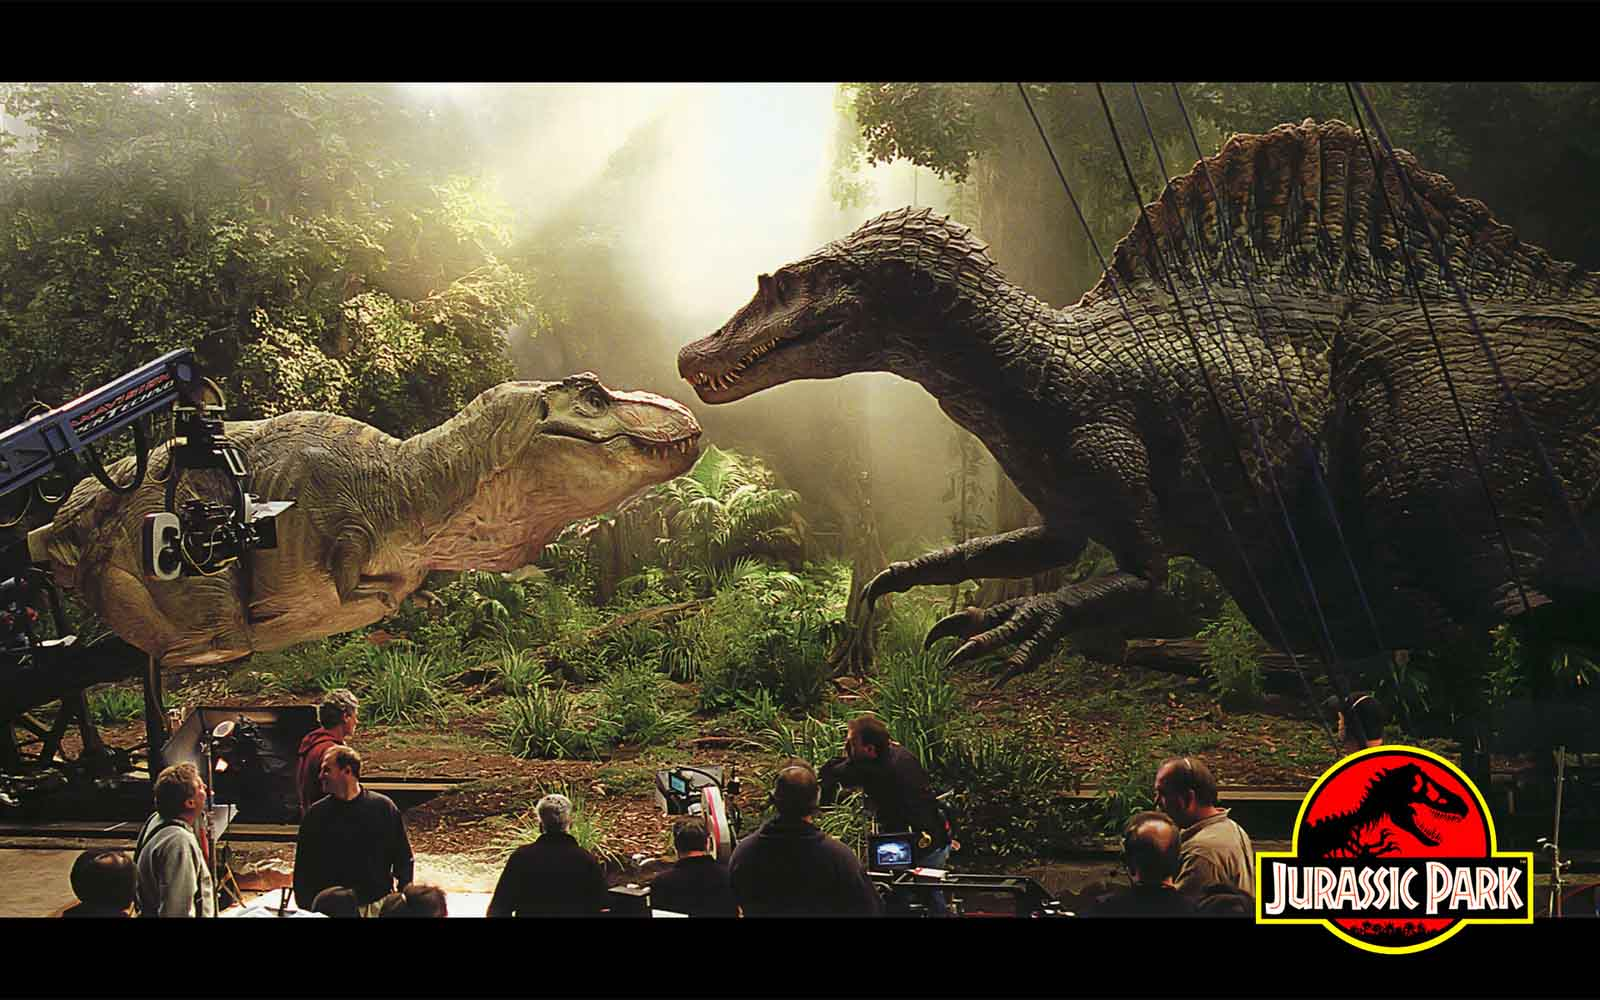 jurassic park 4 wallpapers 40 wallpapers � adorable